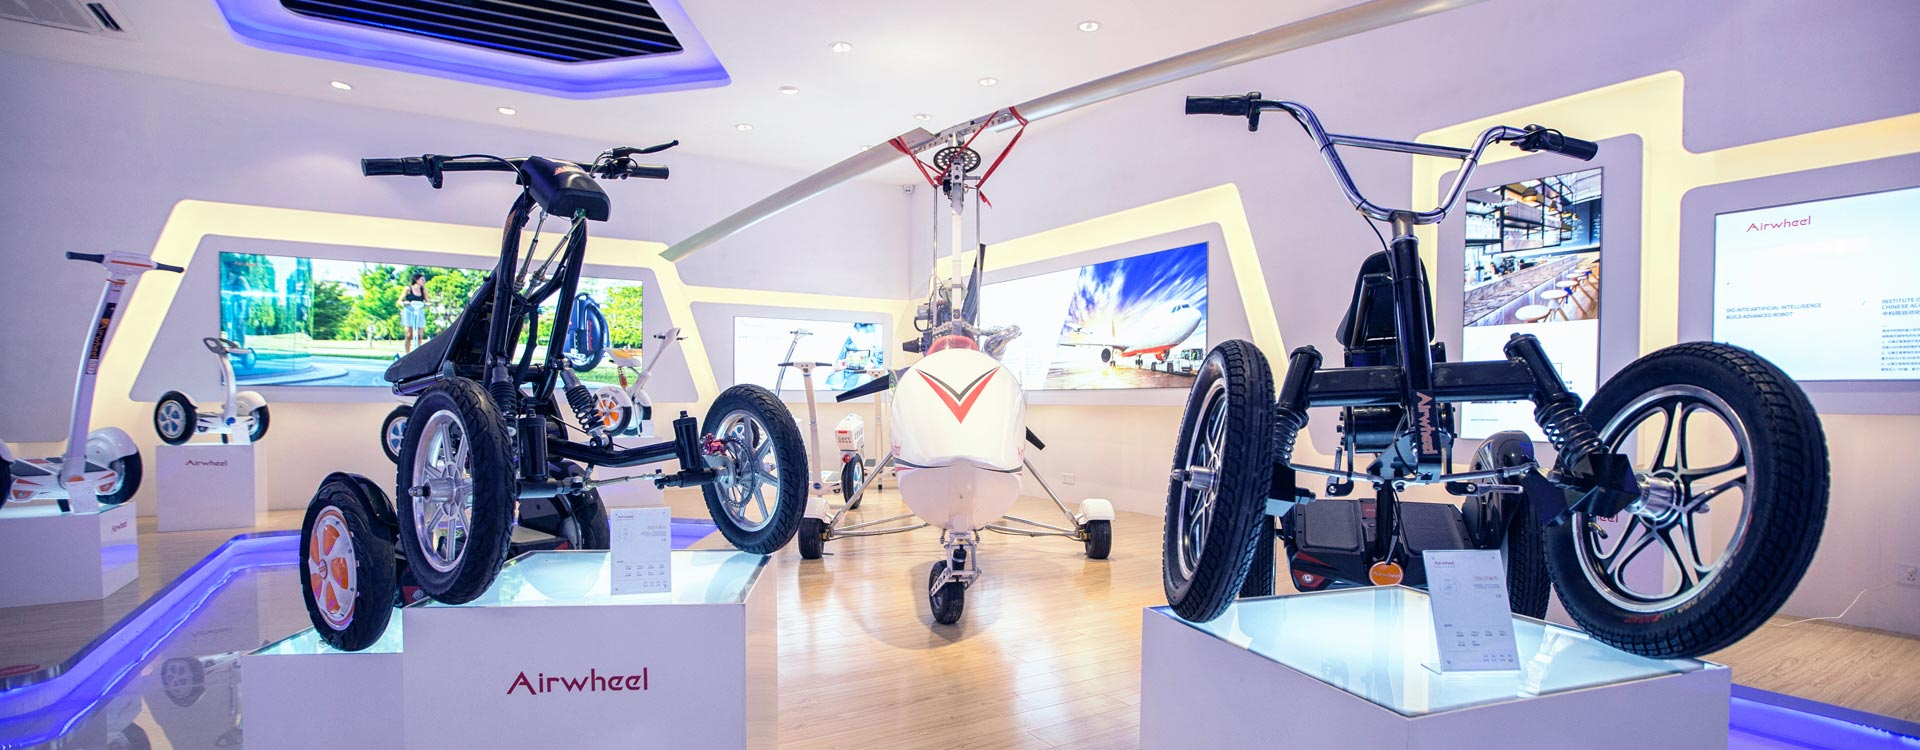 2017 Airwheel New Smart Products Reviews